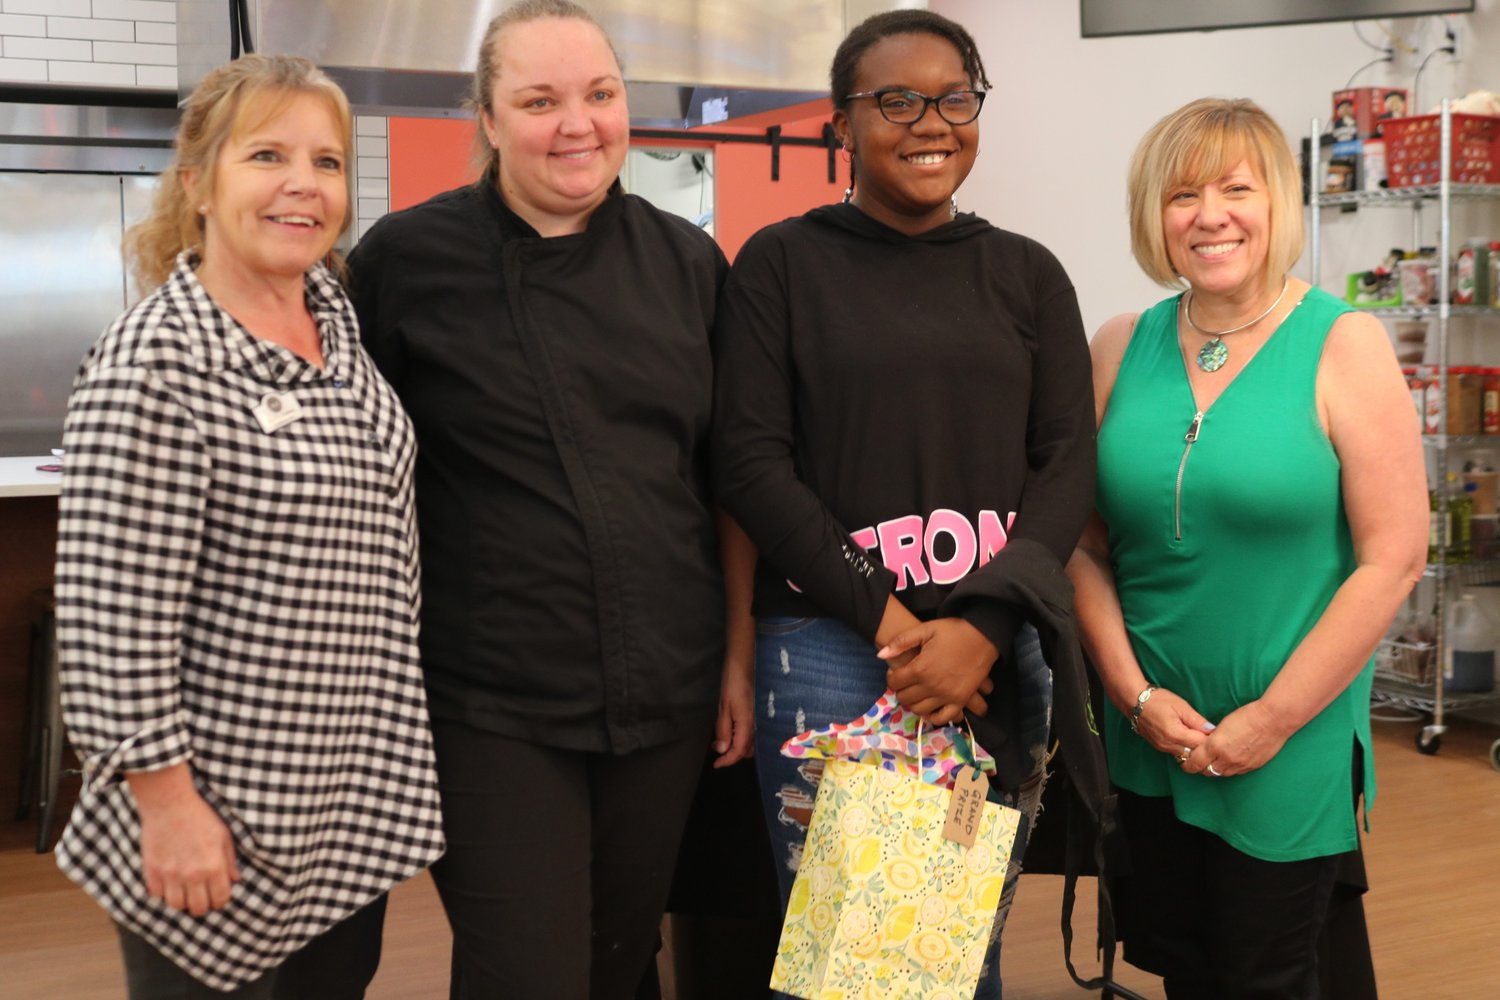 Judges and Chefs (left to right) Nancy Slatsky, Verousce McKibbin and Nancy Guarnieri pose with Cupcake Contest winner, Symphony Brown, who baked triple chocolate cupcakes.